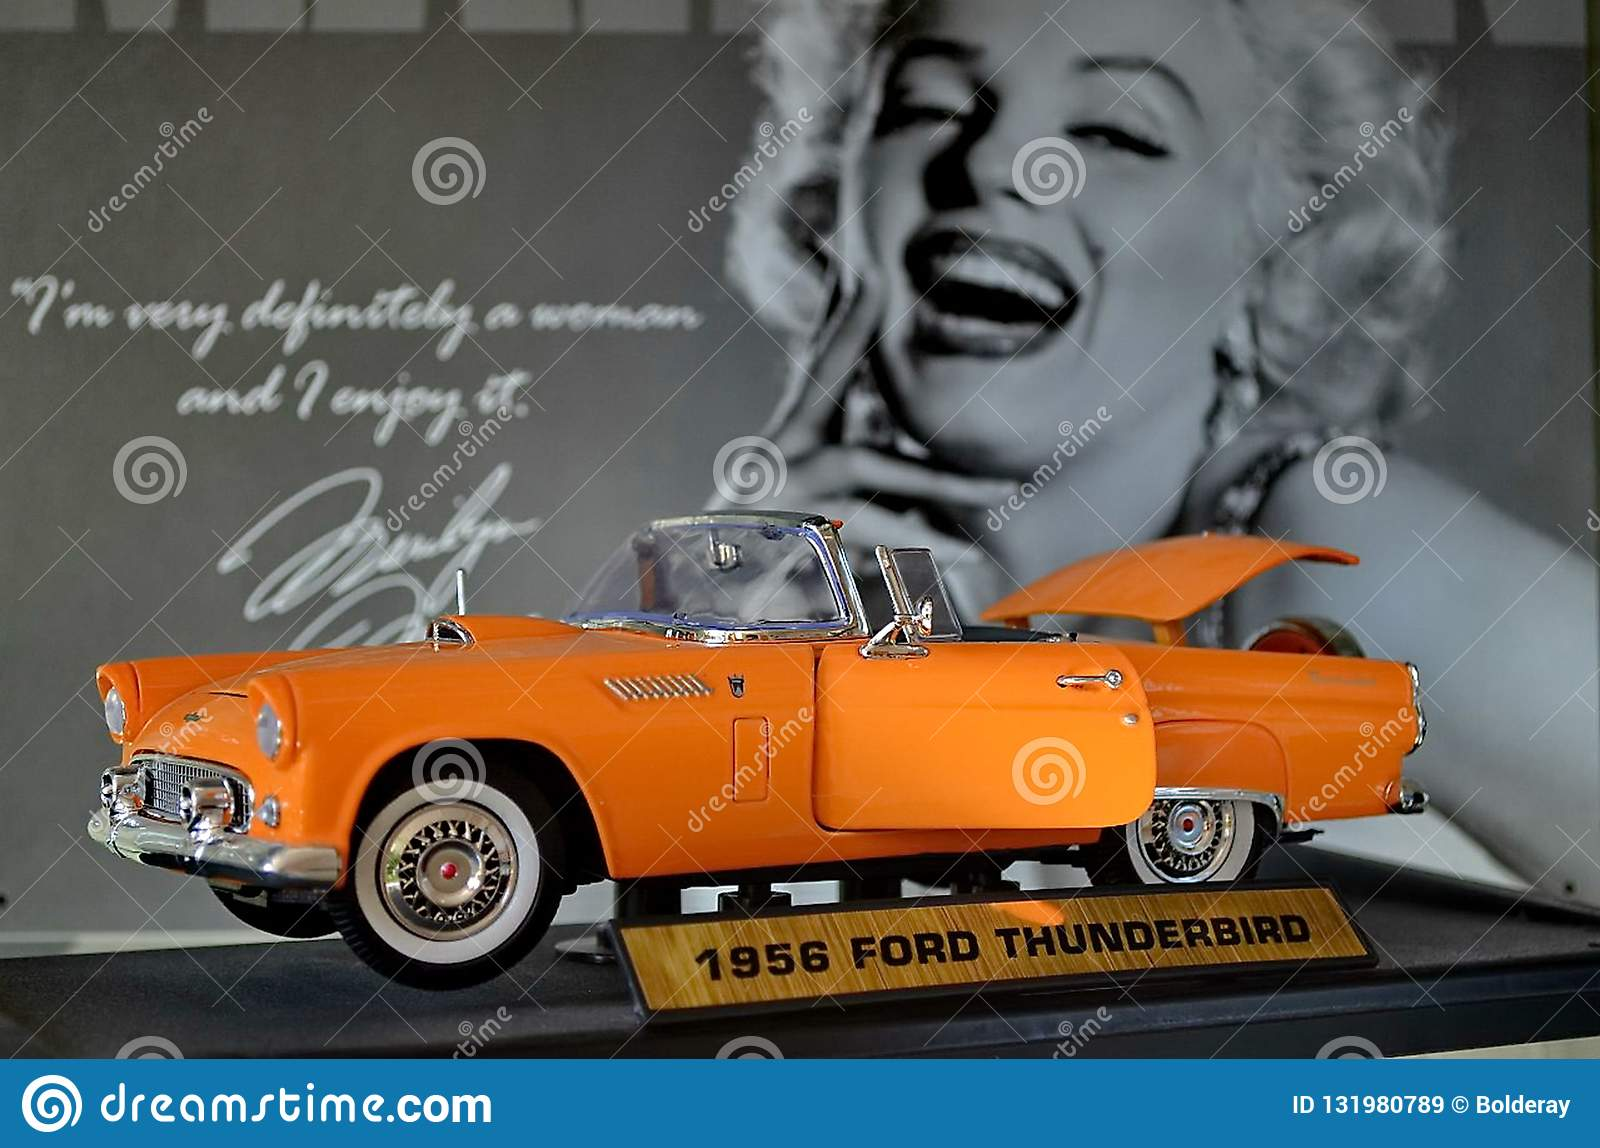 Exhibition of retro cars. Cabriolet car `Ford Thunderbirg`, Also known under the acronym T-Bird. Year of manufacture 1956